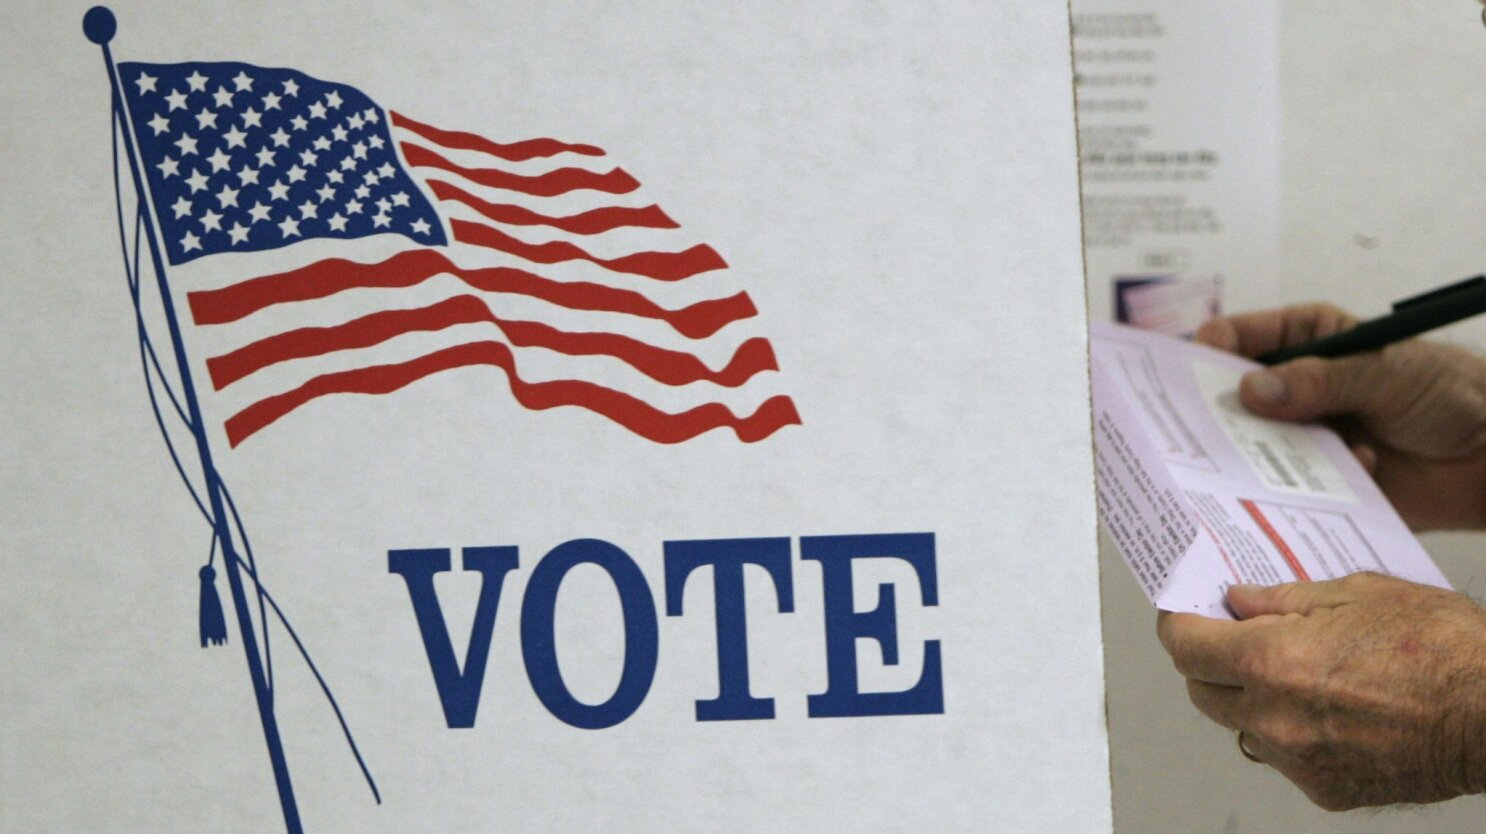 Your Opinions: Little support shown for letting 17-year-olds vote